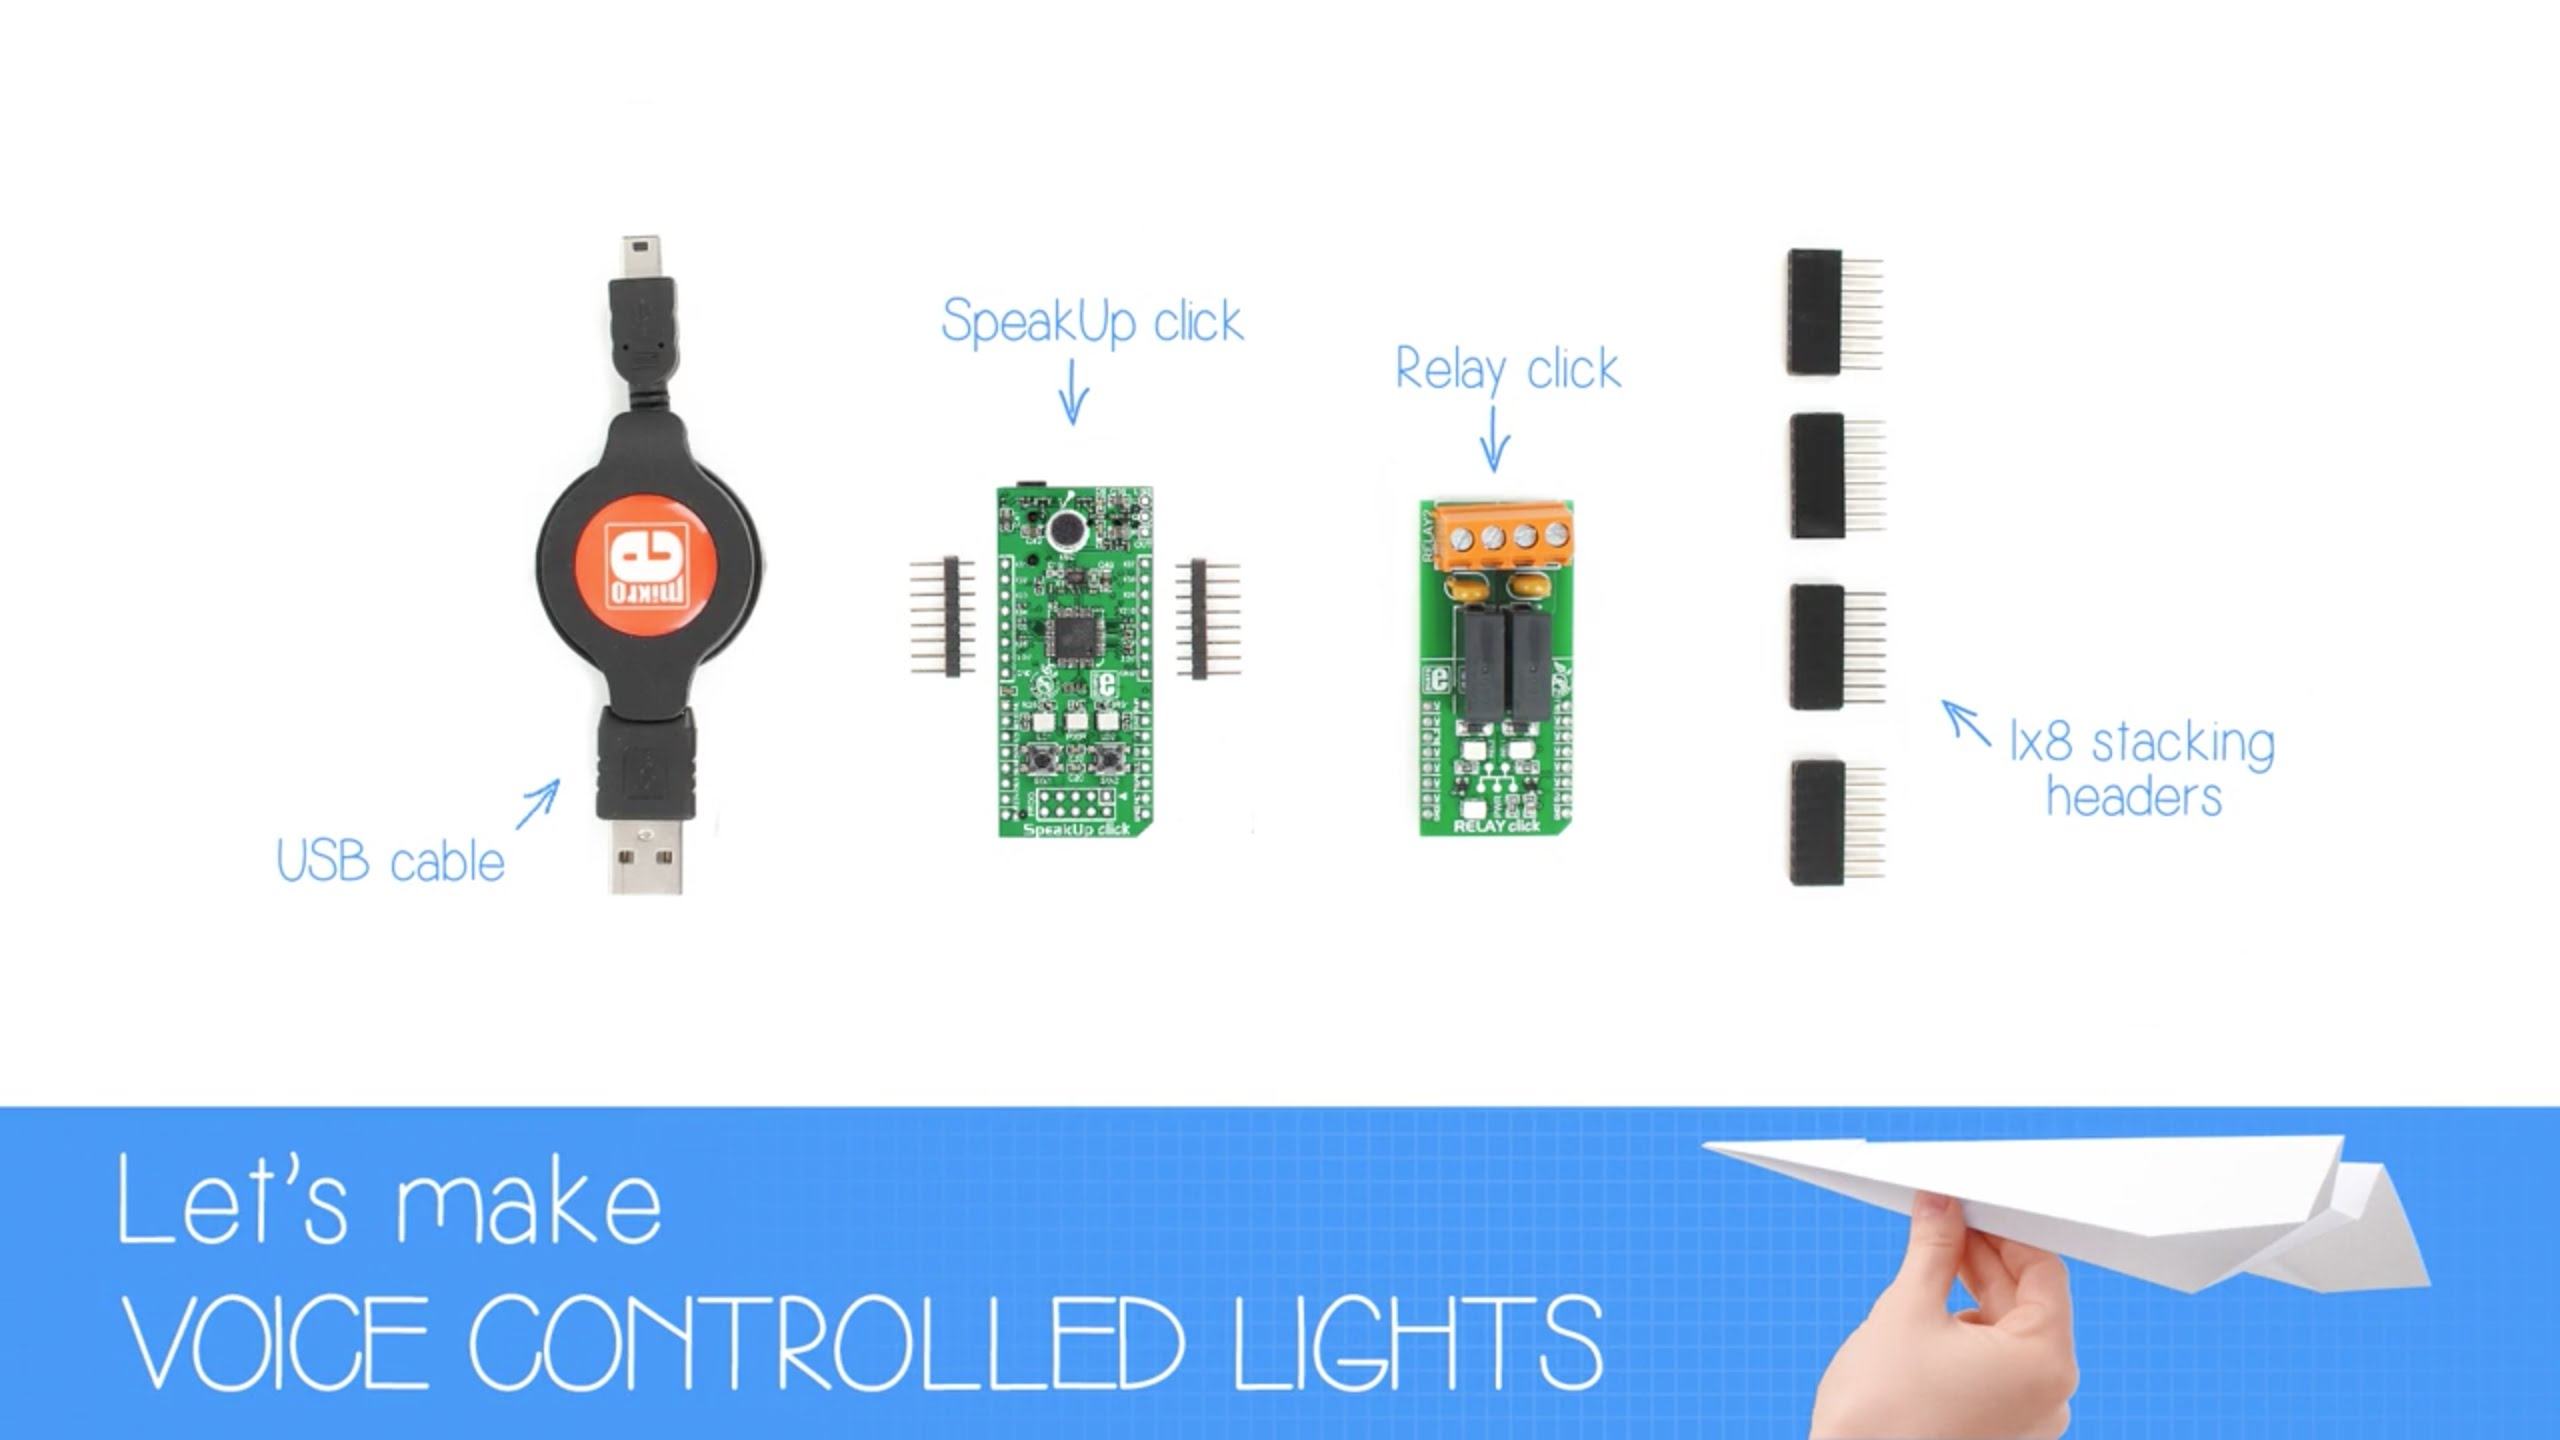 Let's make voice controlled lights!